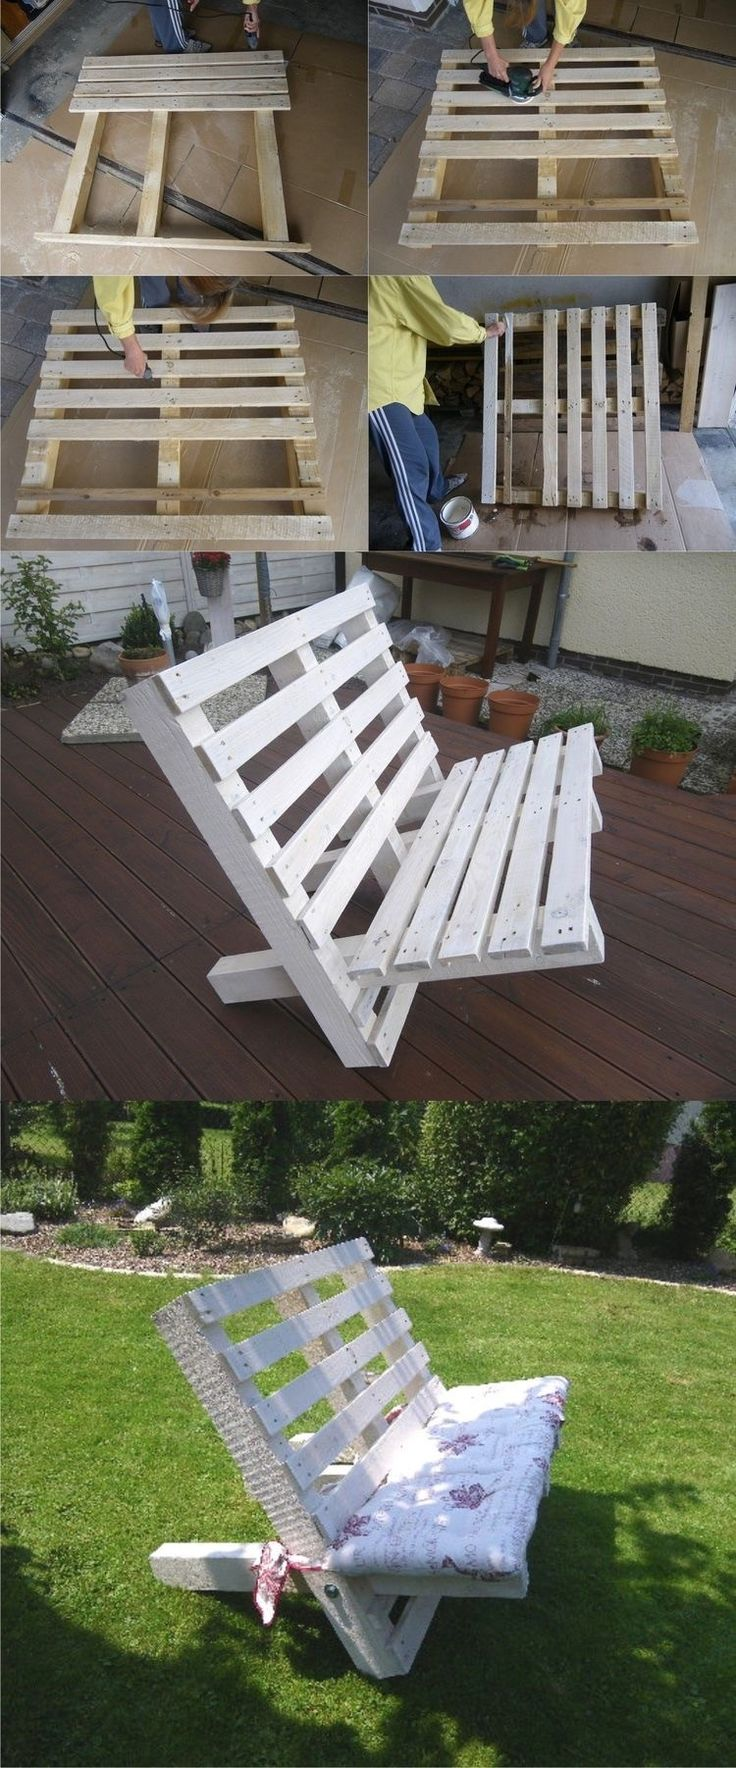 diy pallet garden bench - Garden Ideas Using Pallets